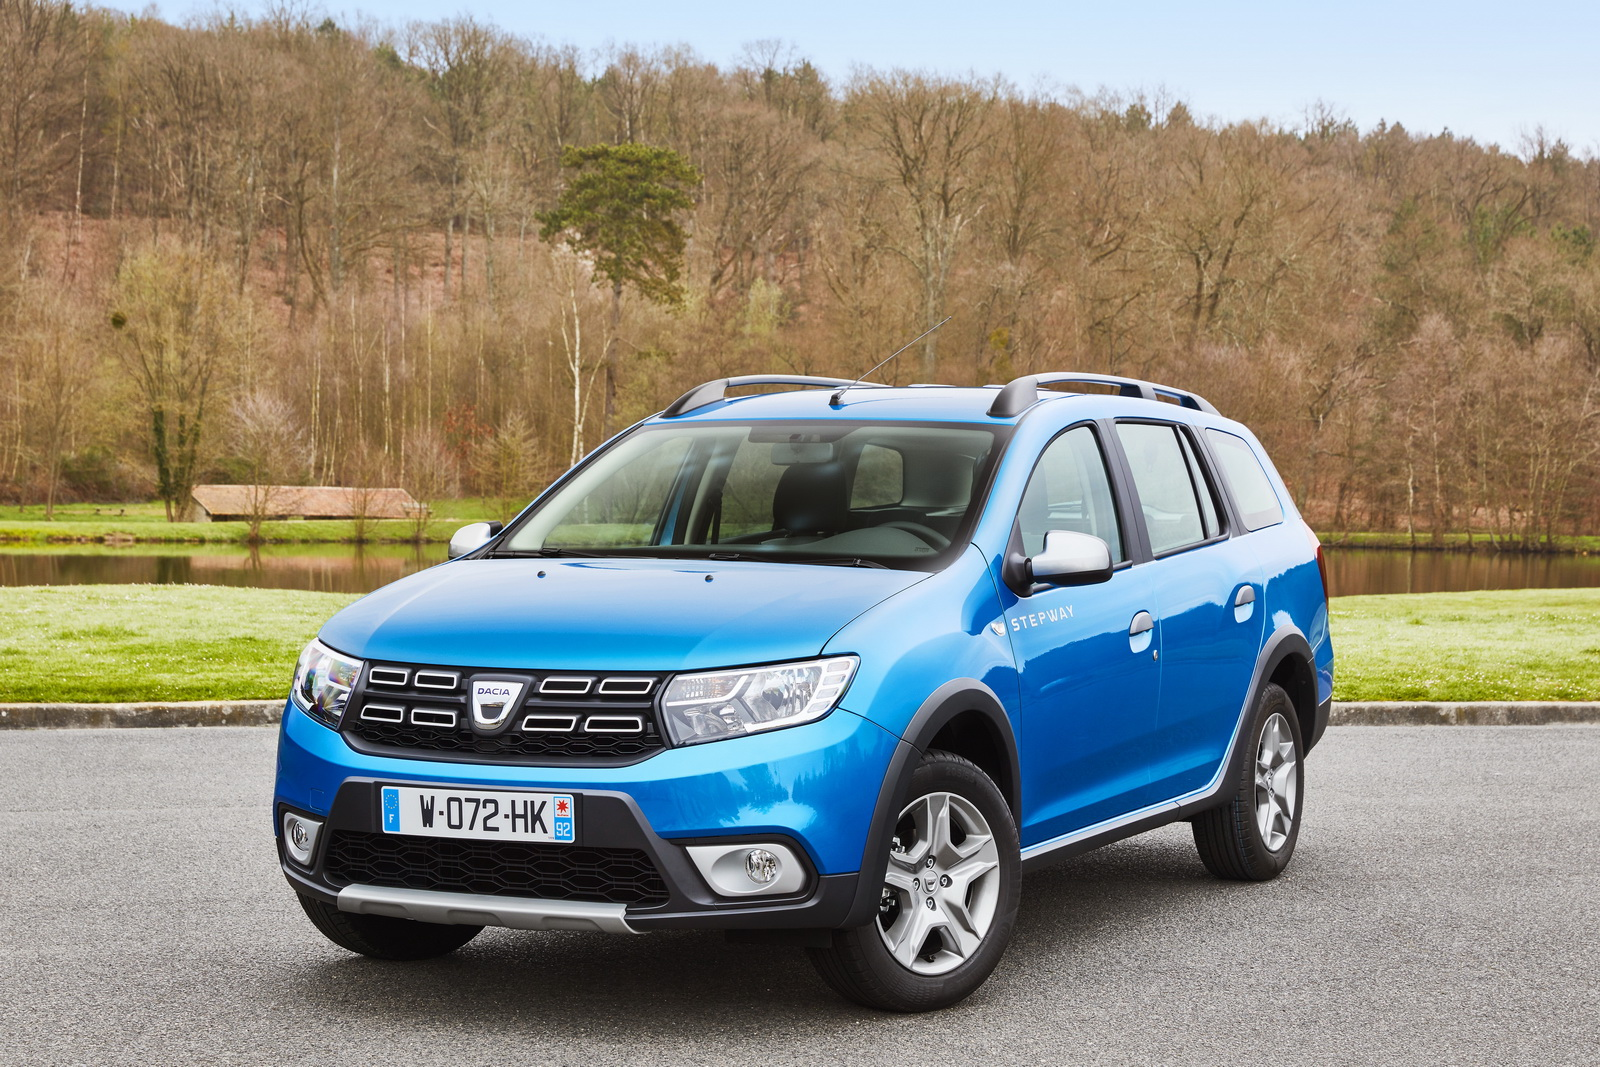 dacia gives logan mcv a lift with new rugged stepway version carscoops. Black Bedroom Furniture Sets. Home Design Ideas